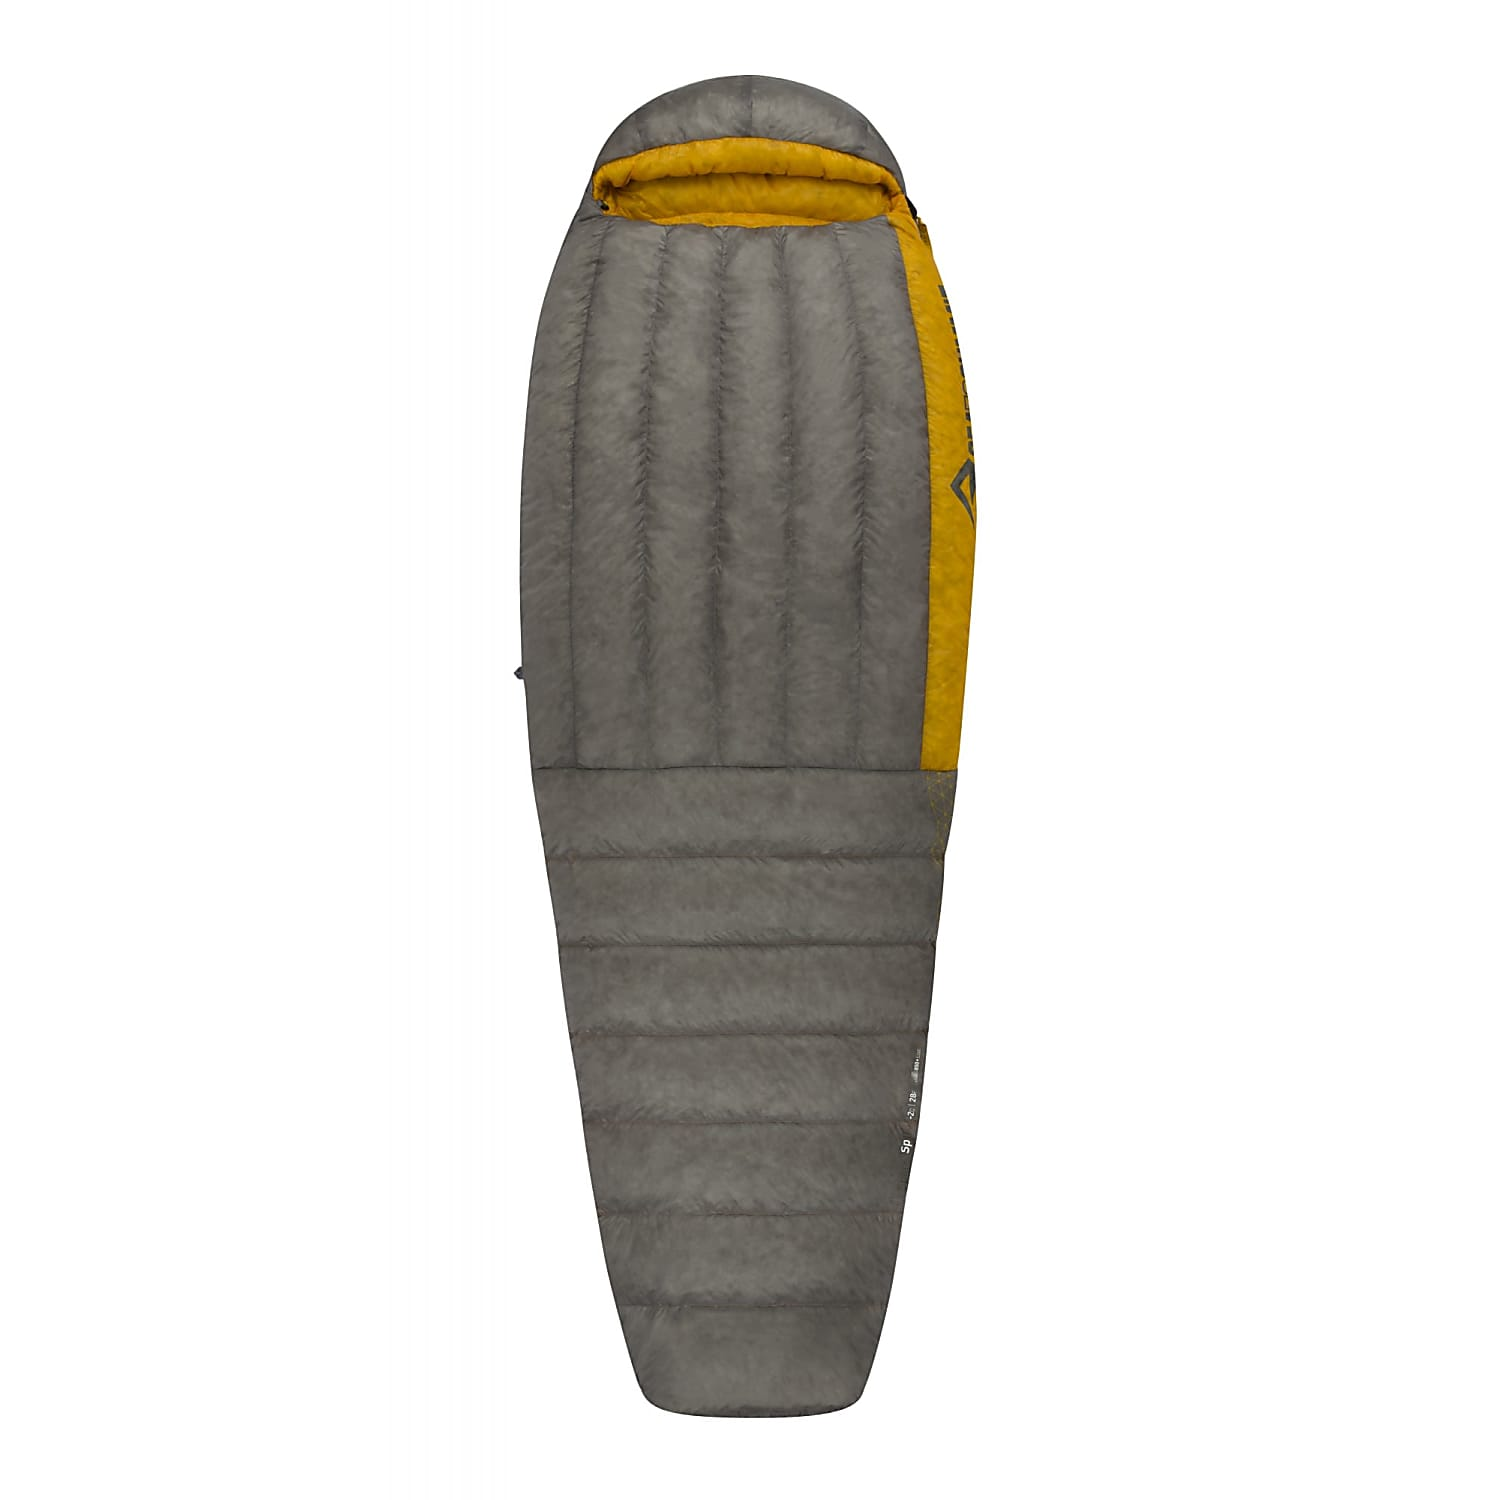 Sea to Summit Spark II sleeping bag shown fully closed and laid flat in grey and yellow colour